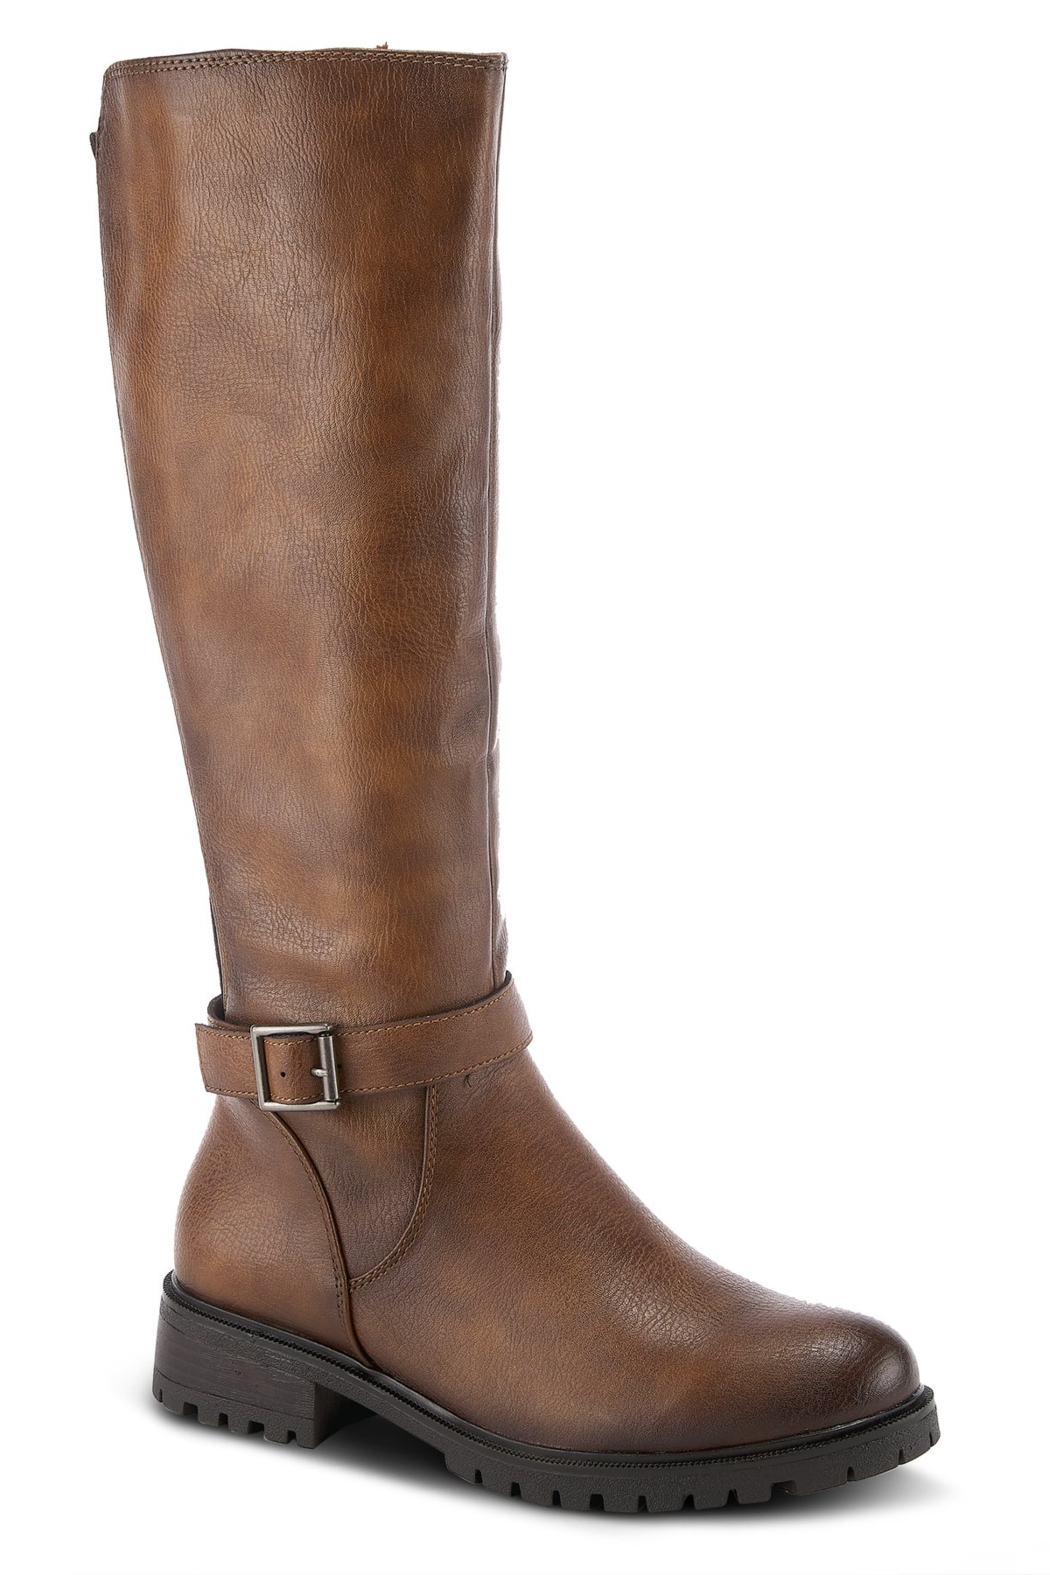 Spring Footwear Ankle Strap Boot - Main Image